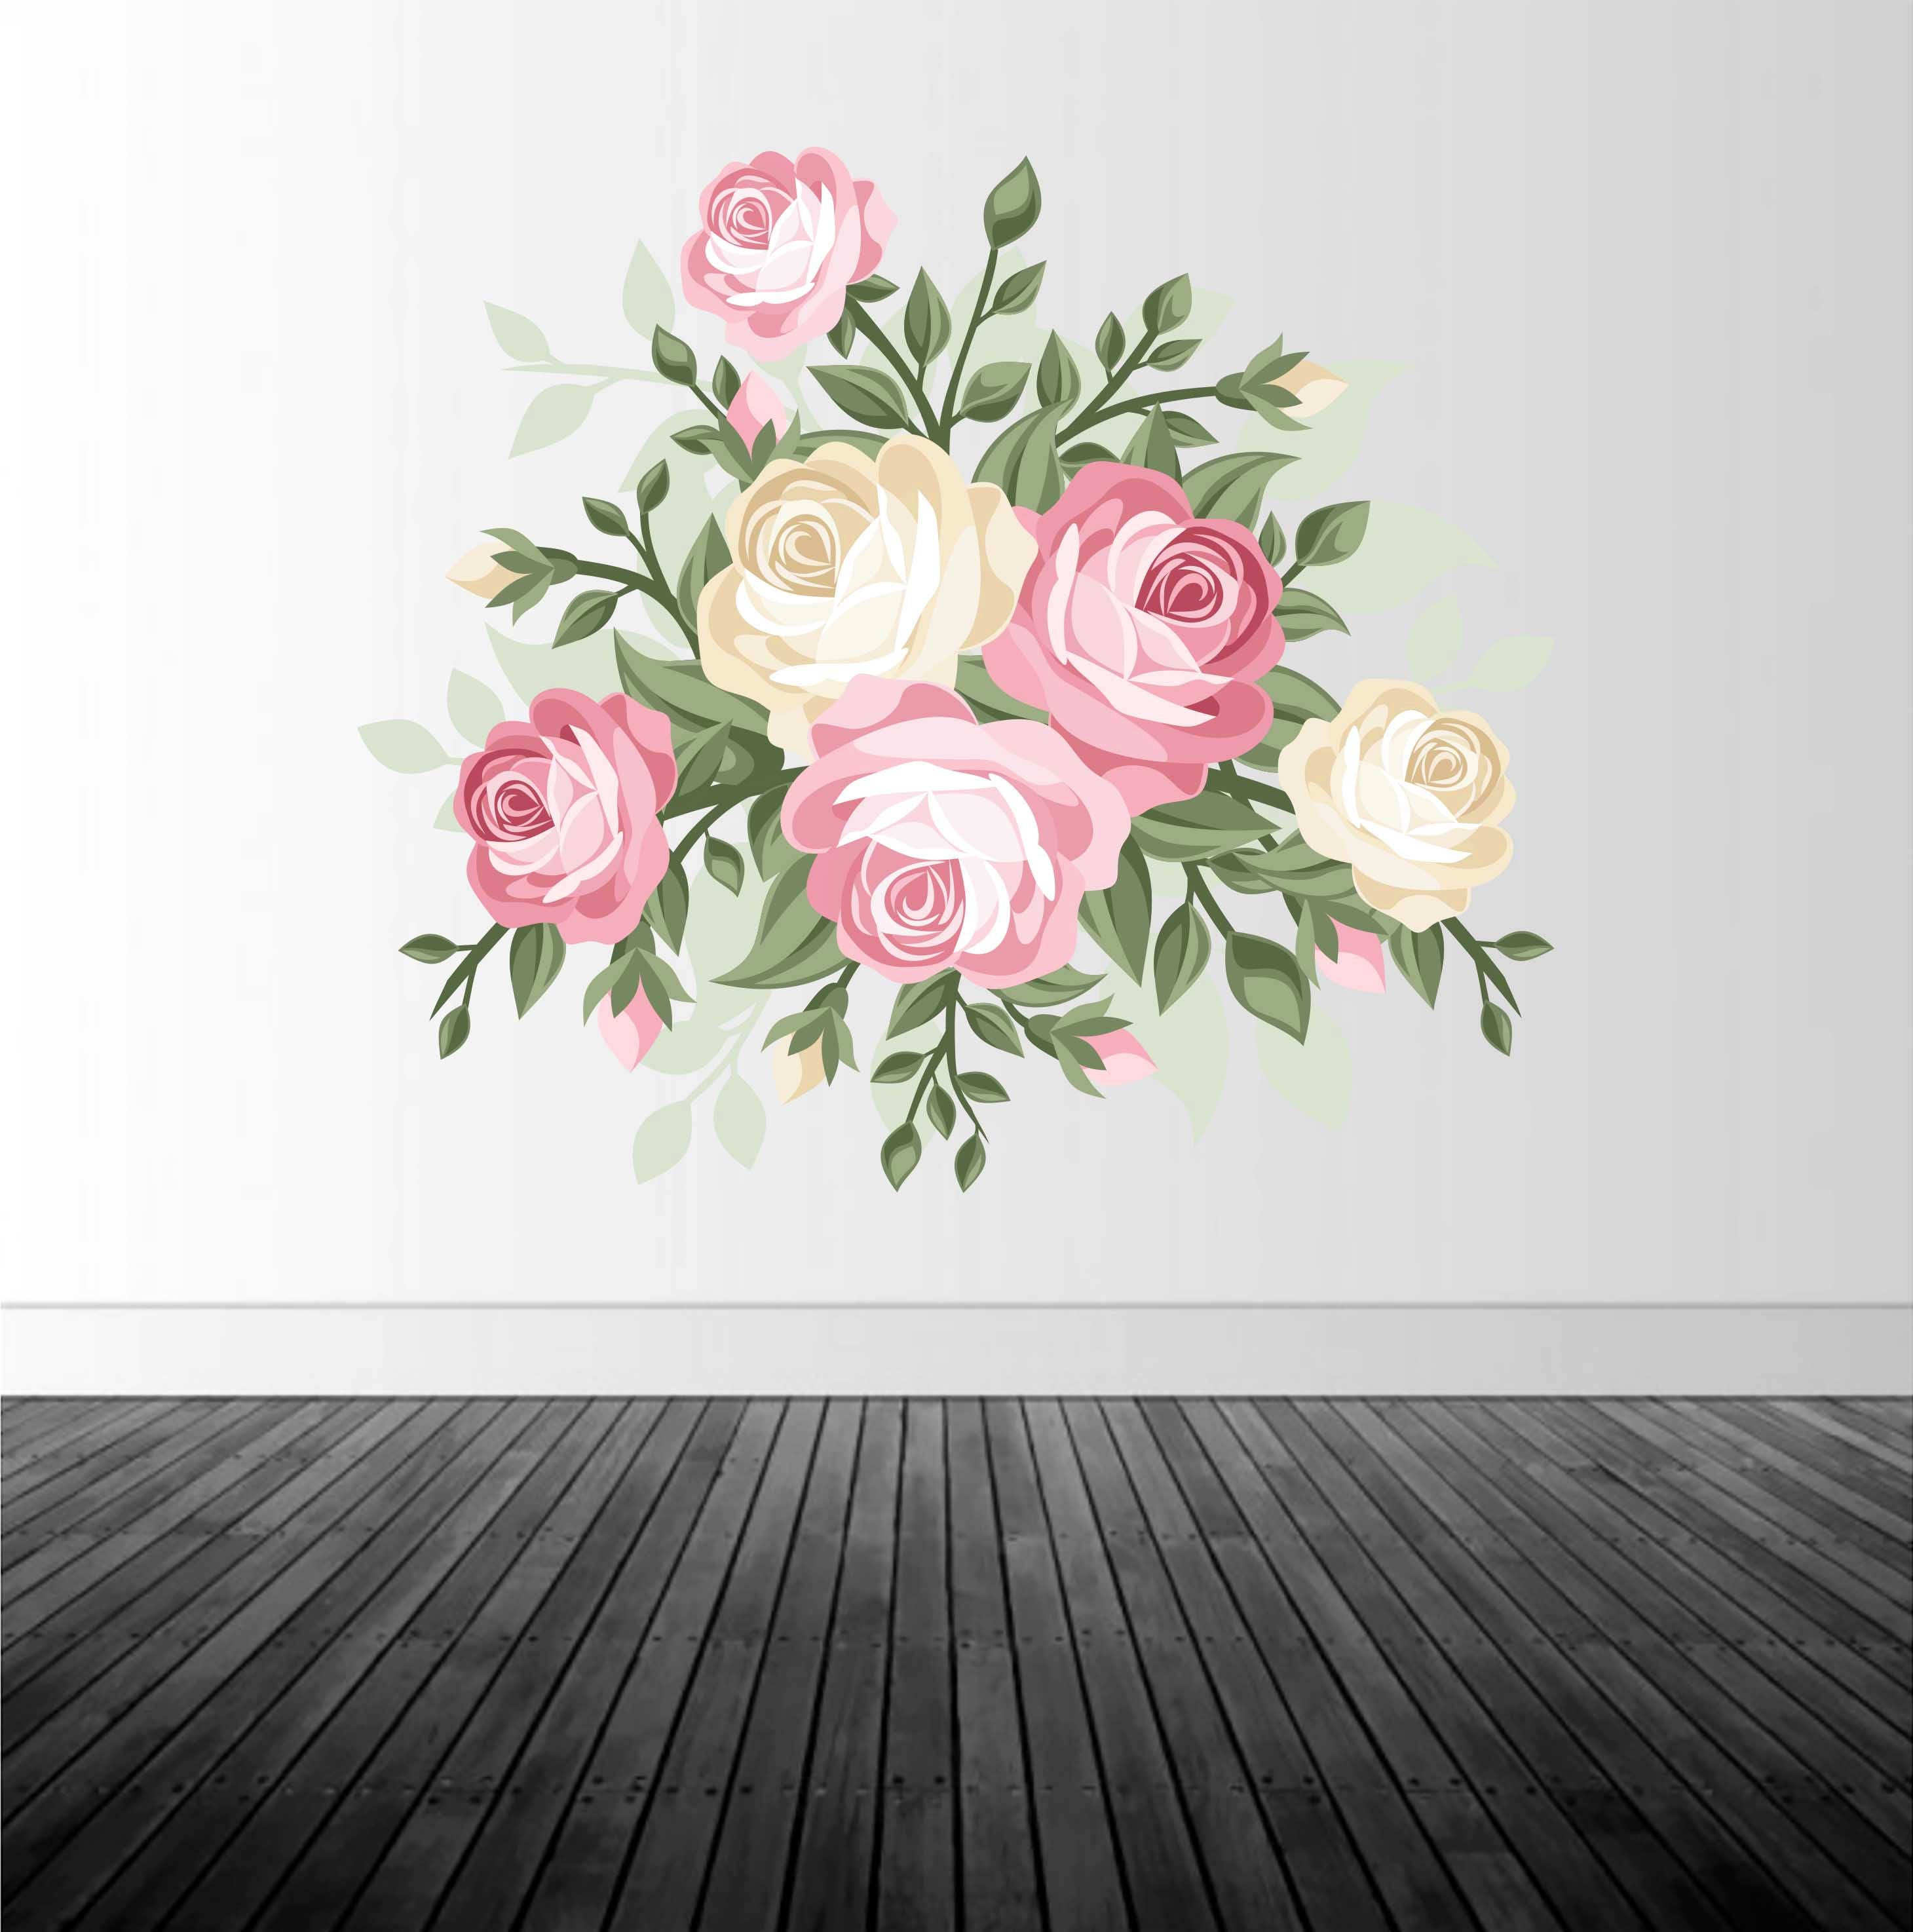 Floral Wall Decal Rose Vinyl Decal Roses Home Decor Rose Decor